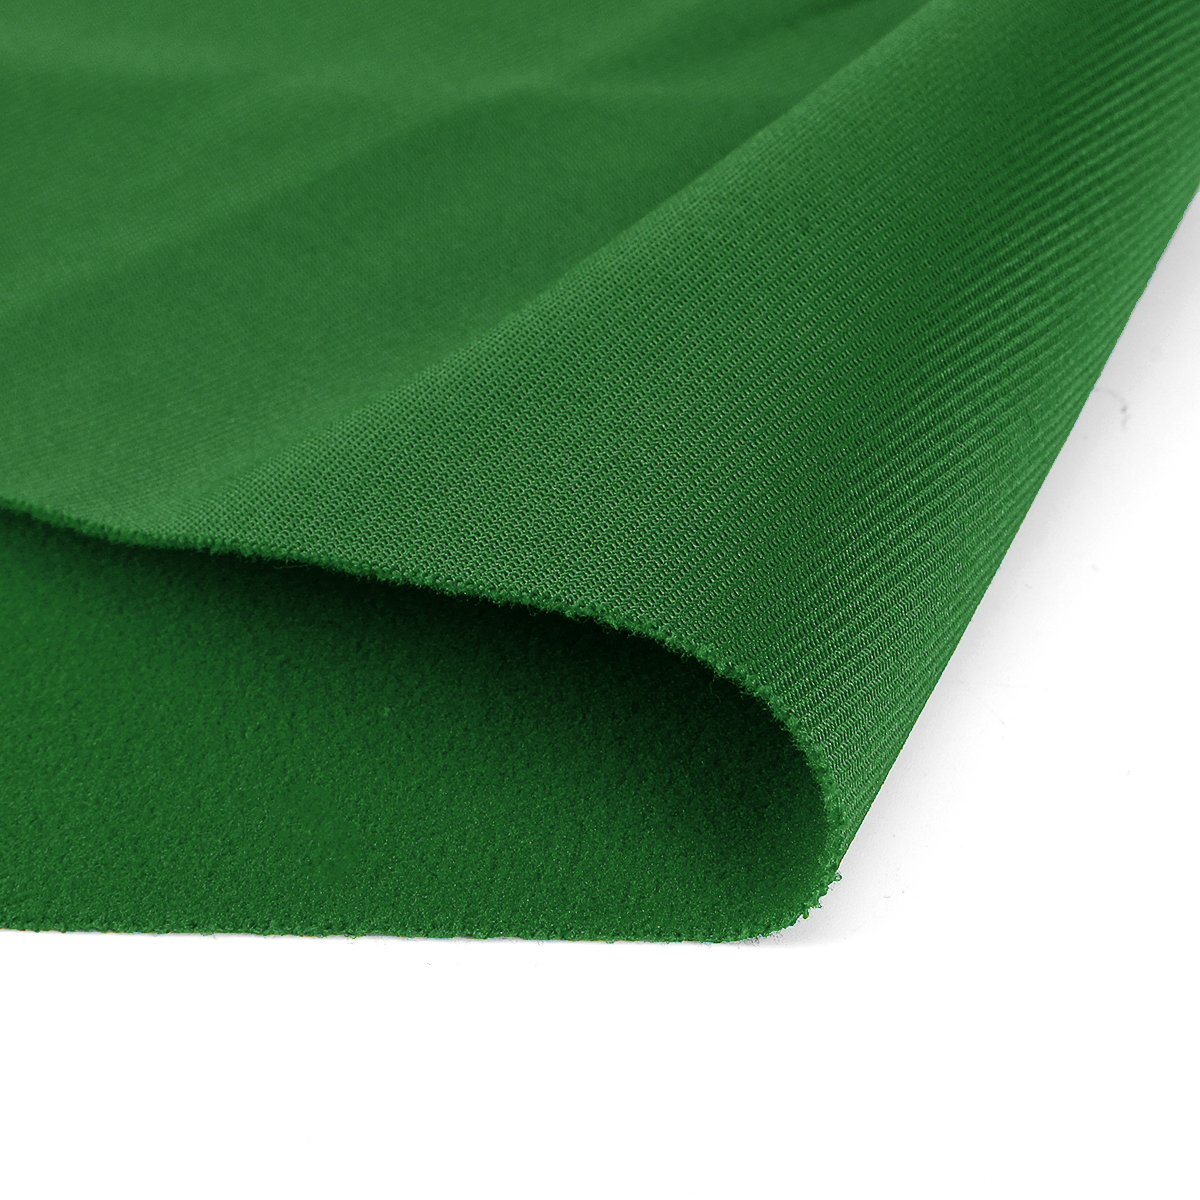 9.5x4.7ft Worsted Billiard Pool Snooker Table Cloth Felt Cover + 6Pcs Felt Strip